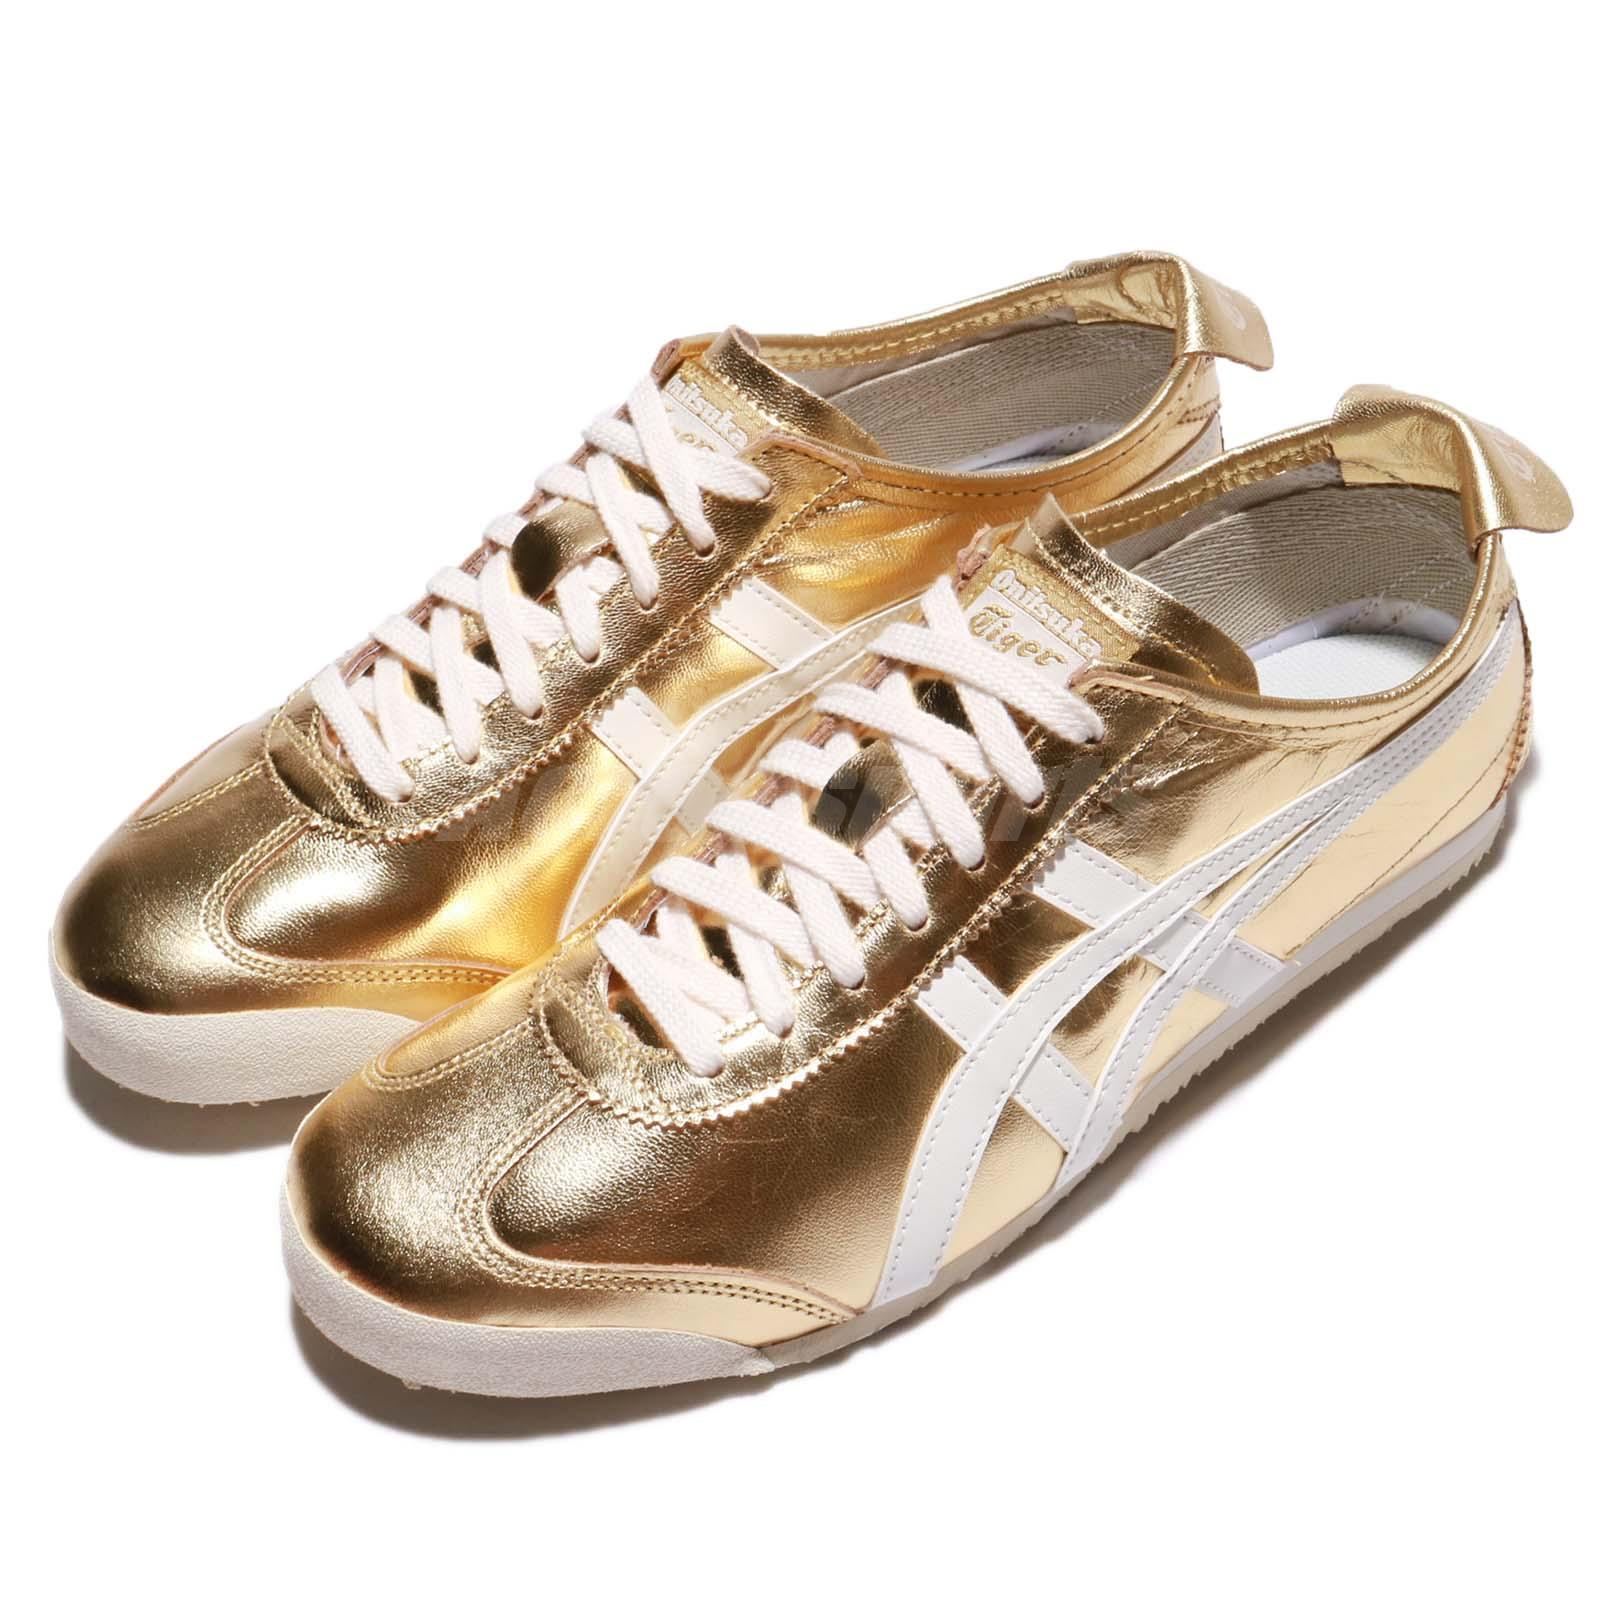 premium selection ba375 c425e Details about Asics Onitsuka Tiger Mexico 66 Gold White Men Casual Shoes  Sneakers THL7C2-9401